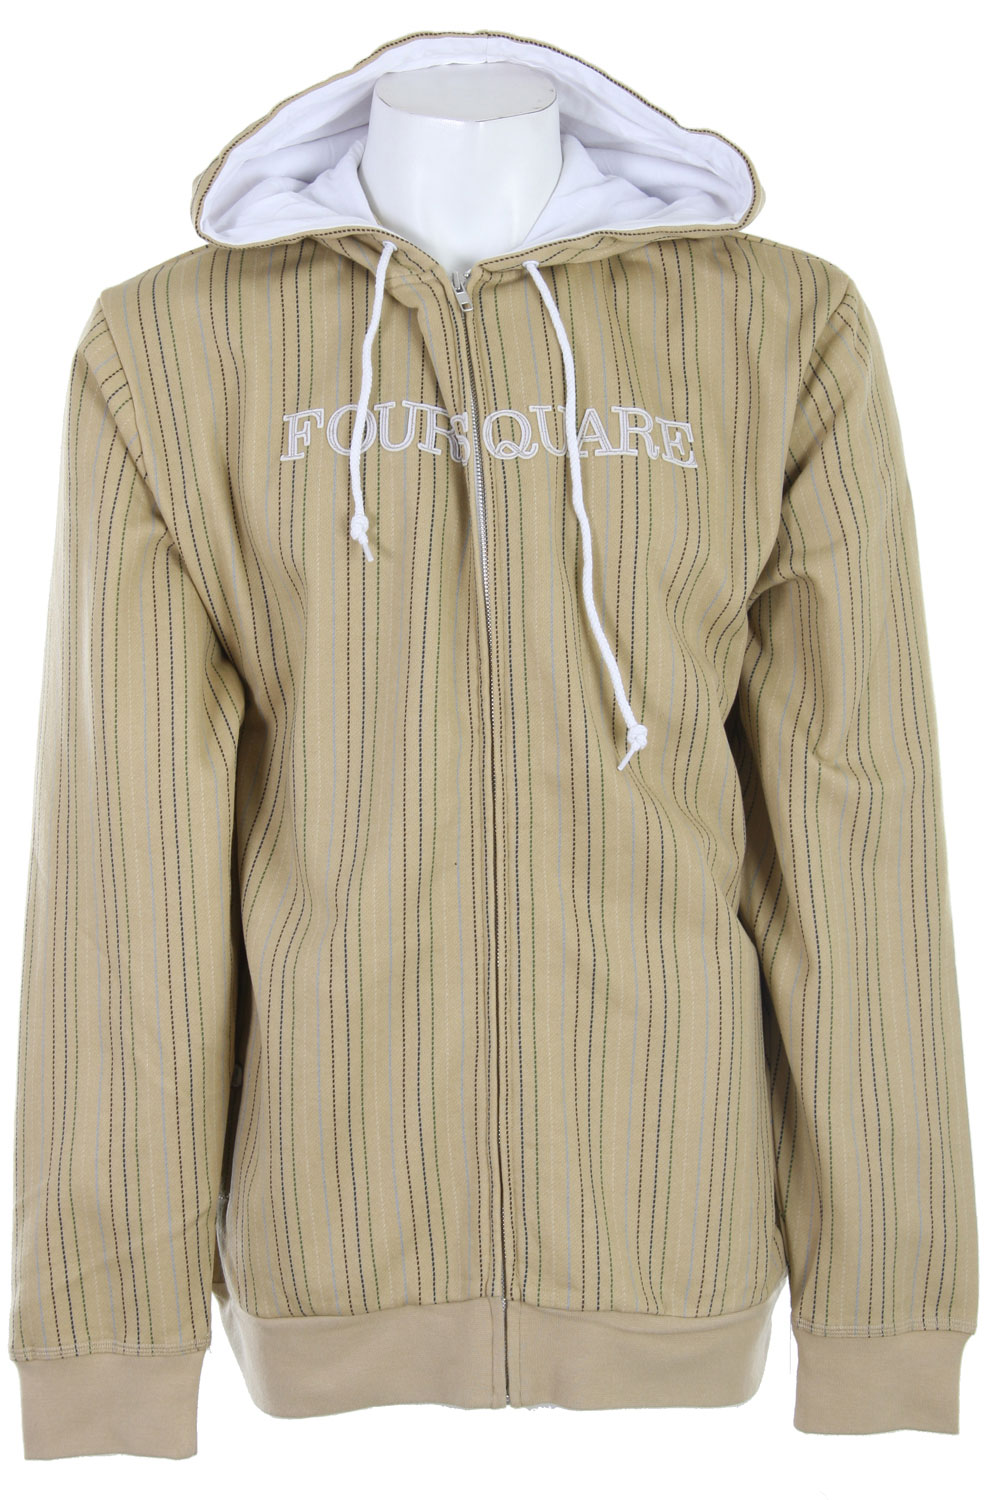 Snowboard Foursquare Multi-Color Pinstripe Hoodie provides that extra warmth and comfort for that slightly chilly day.  This pinstriped hoodie adds texture to the look making it unique from plain hoodies seen everywhere else.  Made with cotton and polyester, it's guaranteed comfort and softness to the touch.  Ideal for everyday wear, keep warm in this cozy hoodie day or night. - $20.95